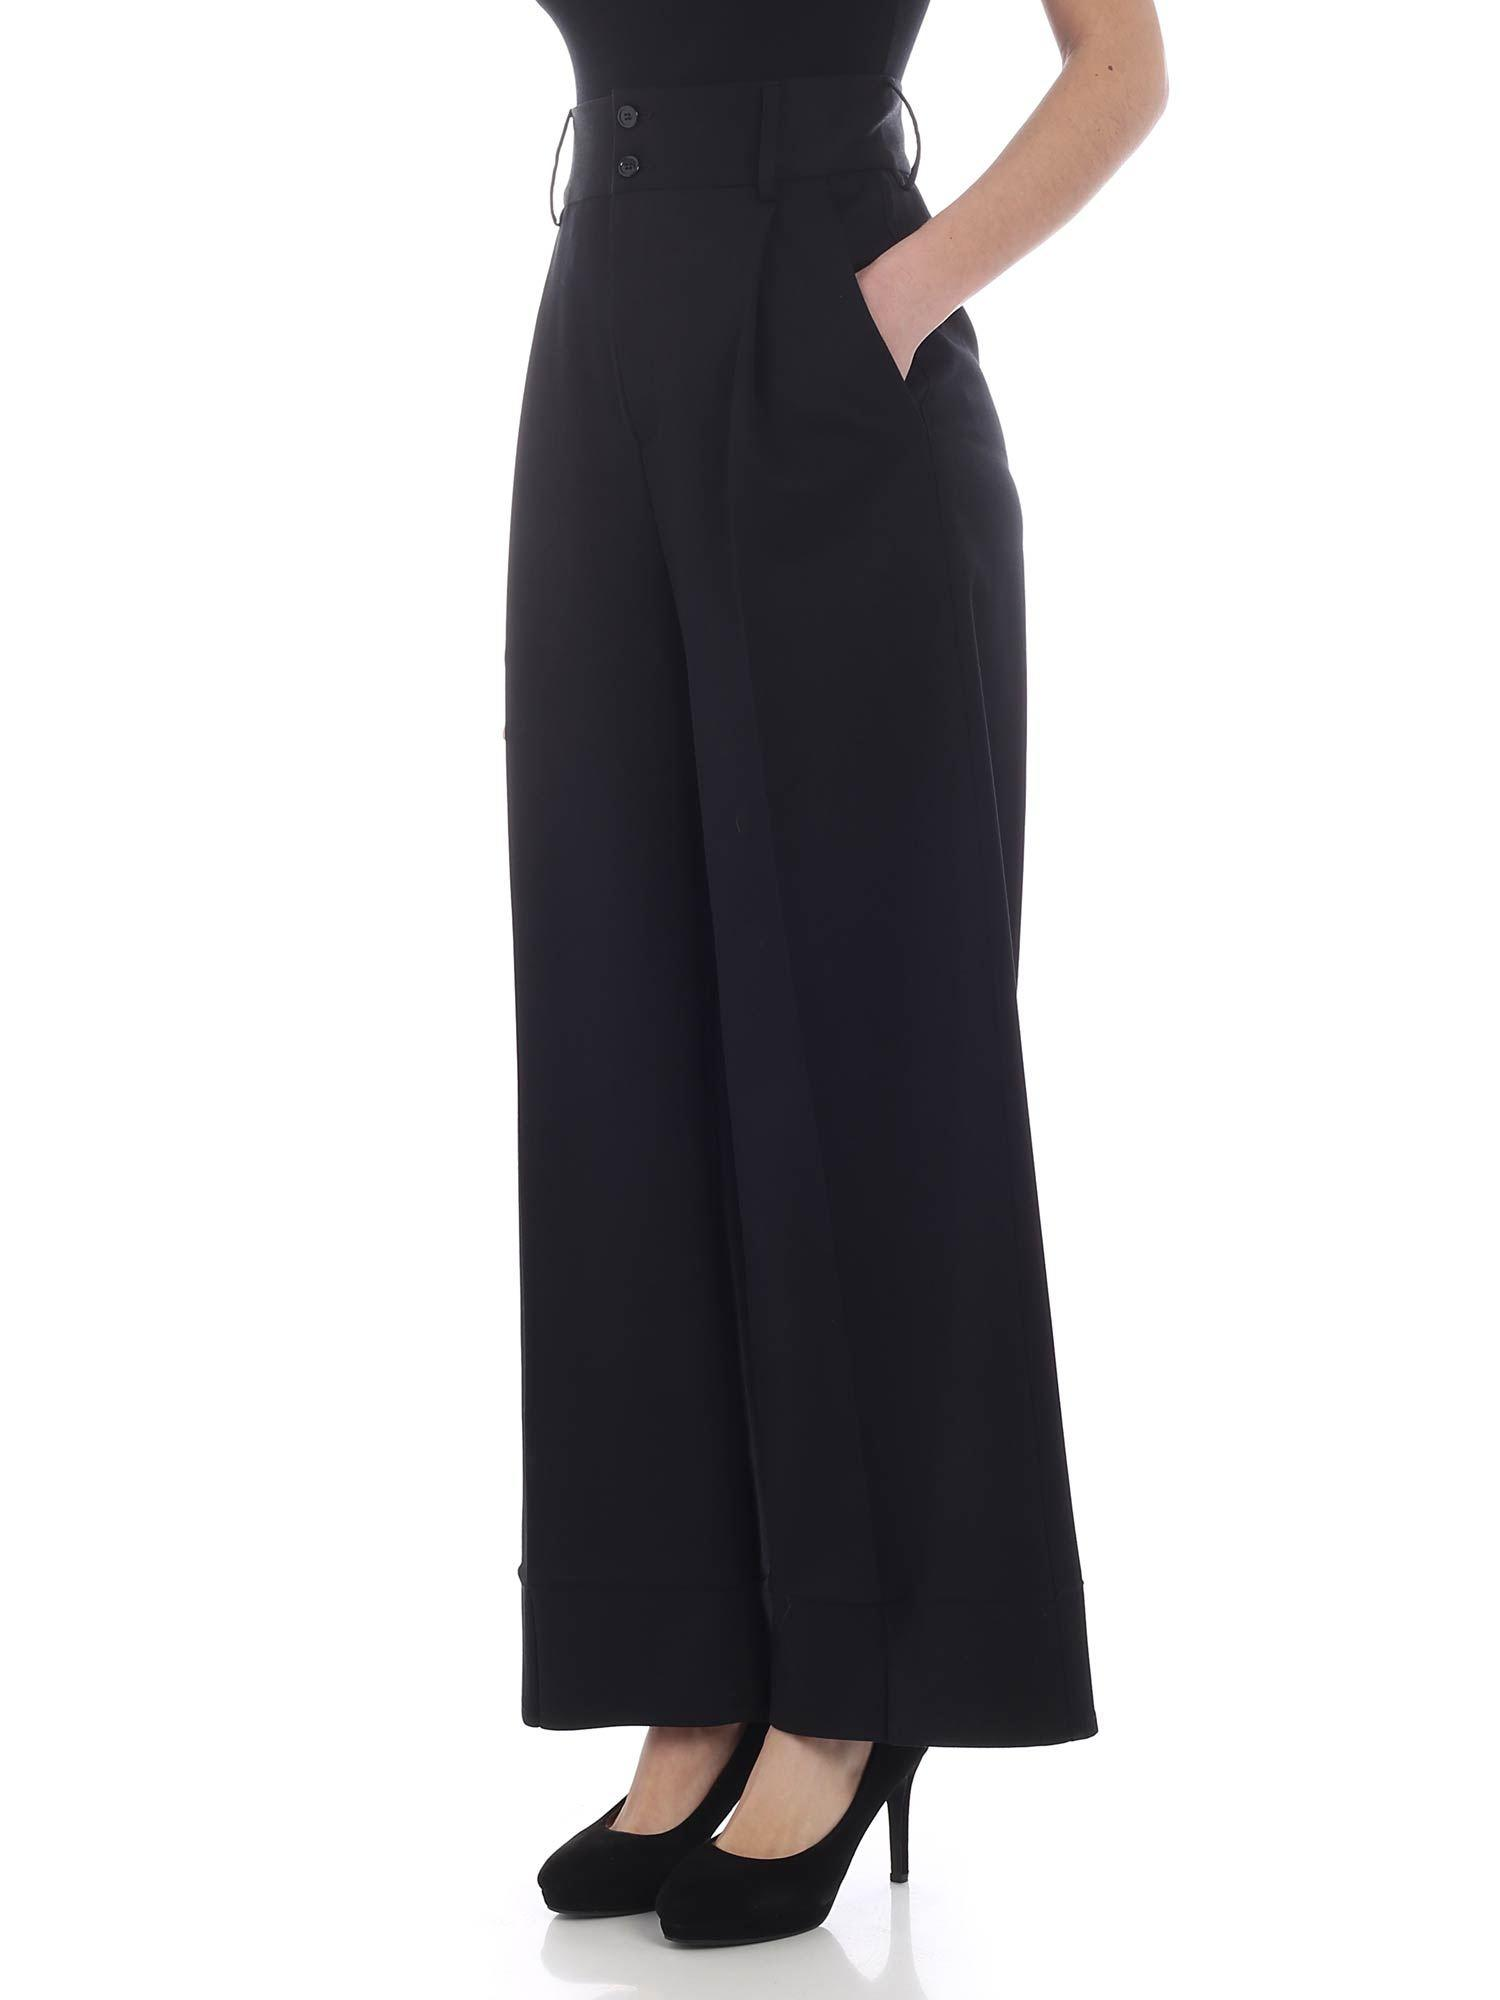 7871ebf15a mm6-by-maison-martin-margiela-black-High-waisted-Black-Palazzo-Trousers.jpeg